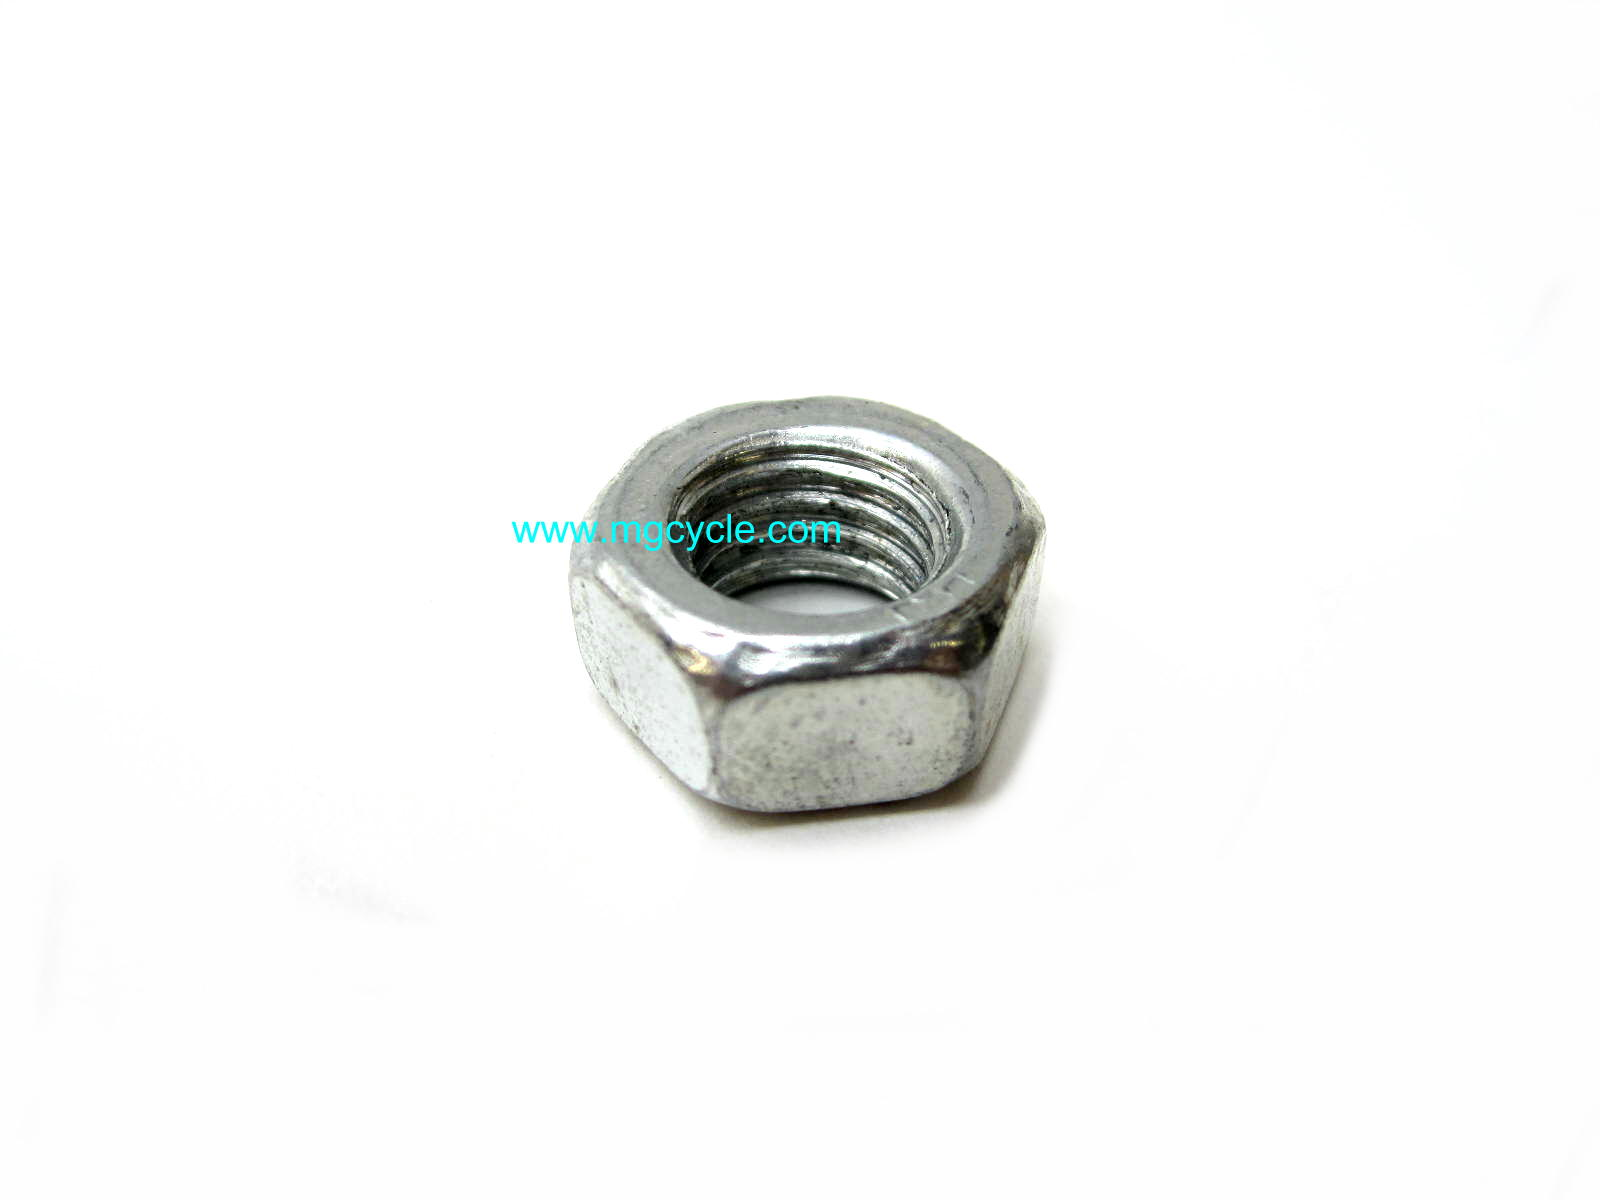 Nut, engine mounting bolt